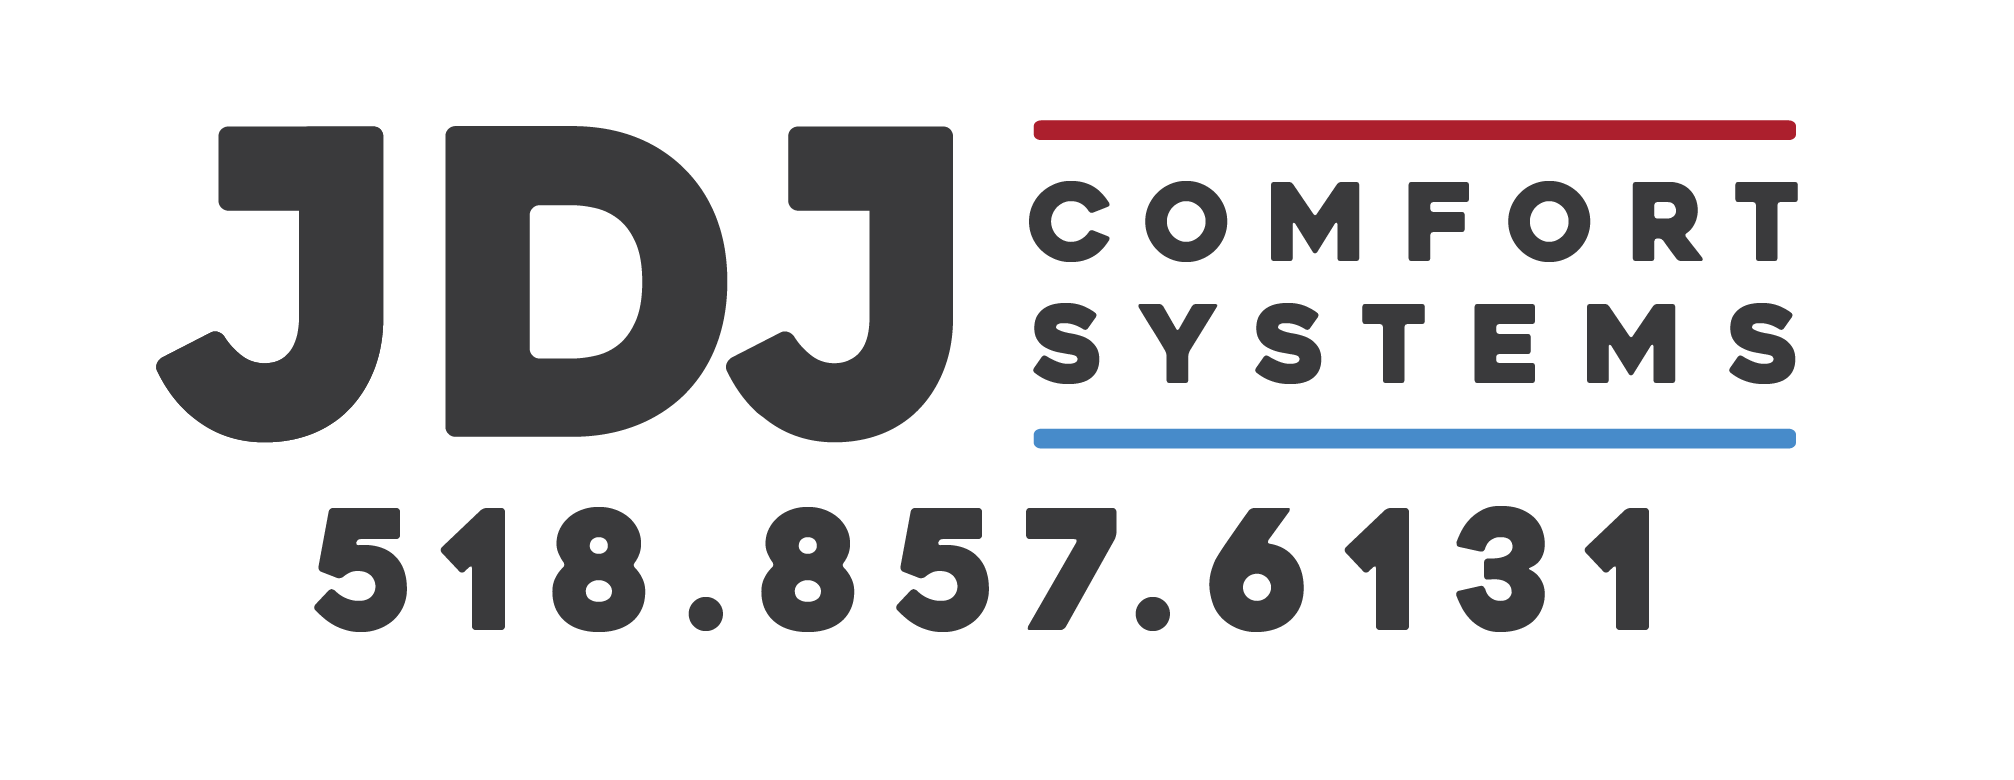 JDJ Comfort Systems Heating & Cooling